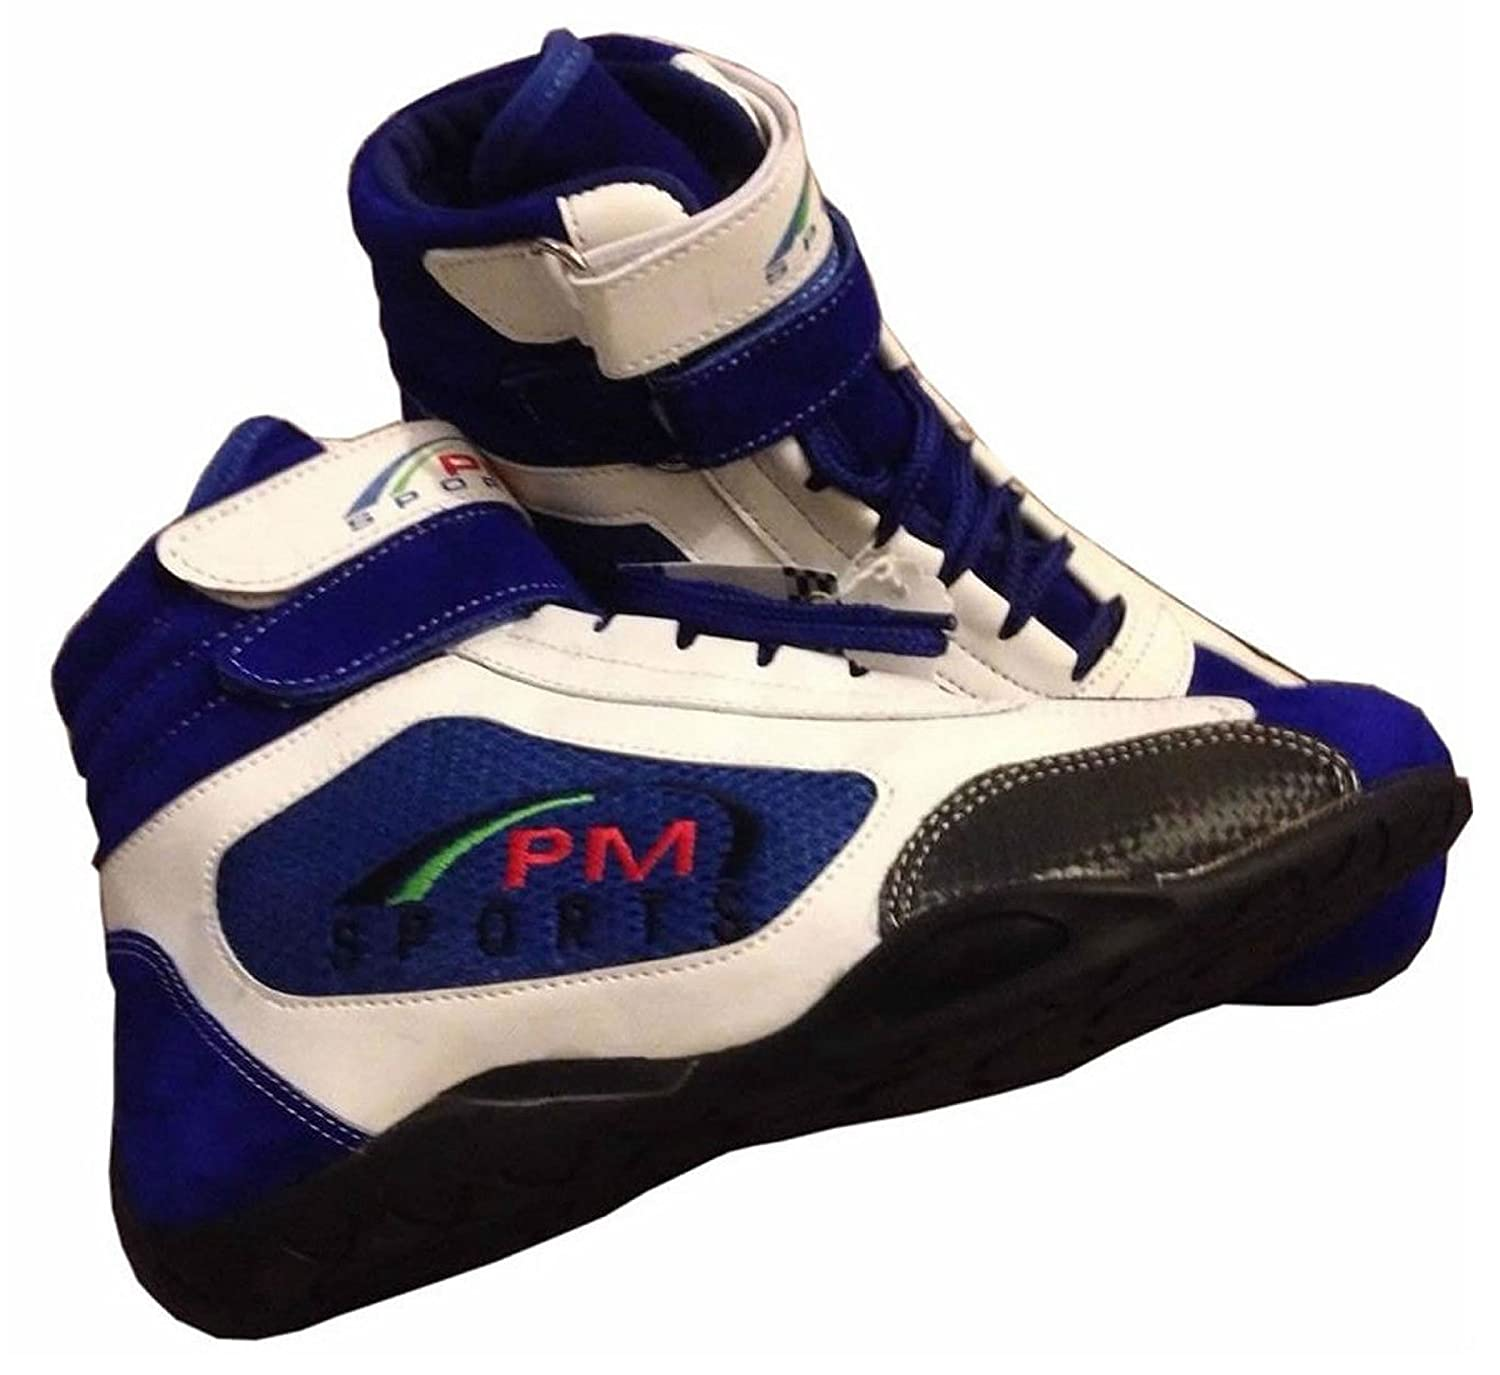 PM Sports Adulte Neuf Karting//Race/Rally/Track Bottes avec Cuir synthétique/en Daim et Mash...